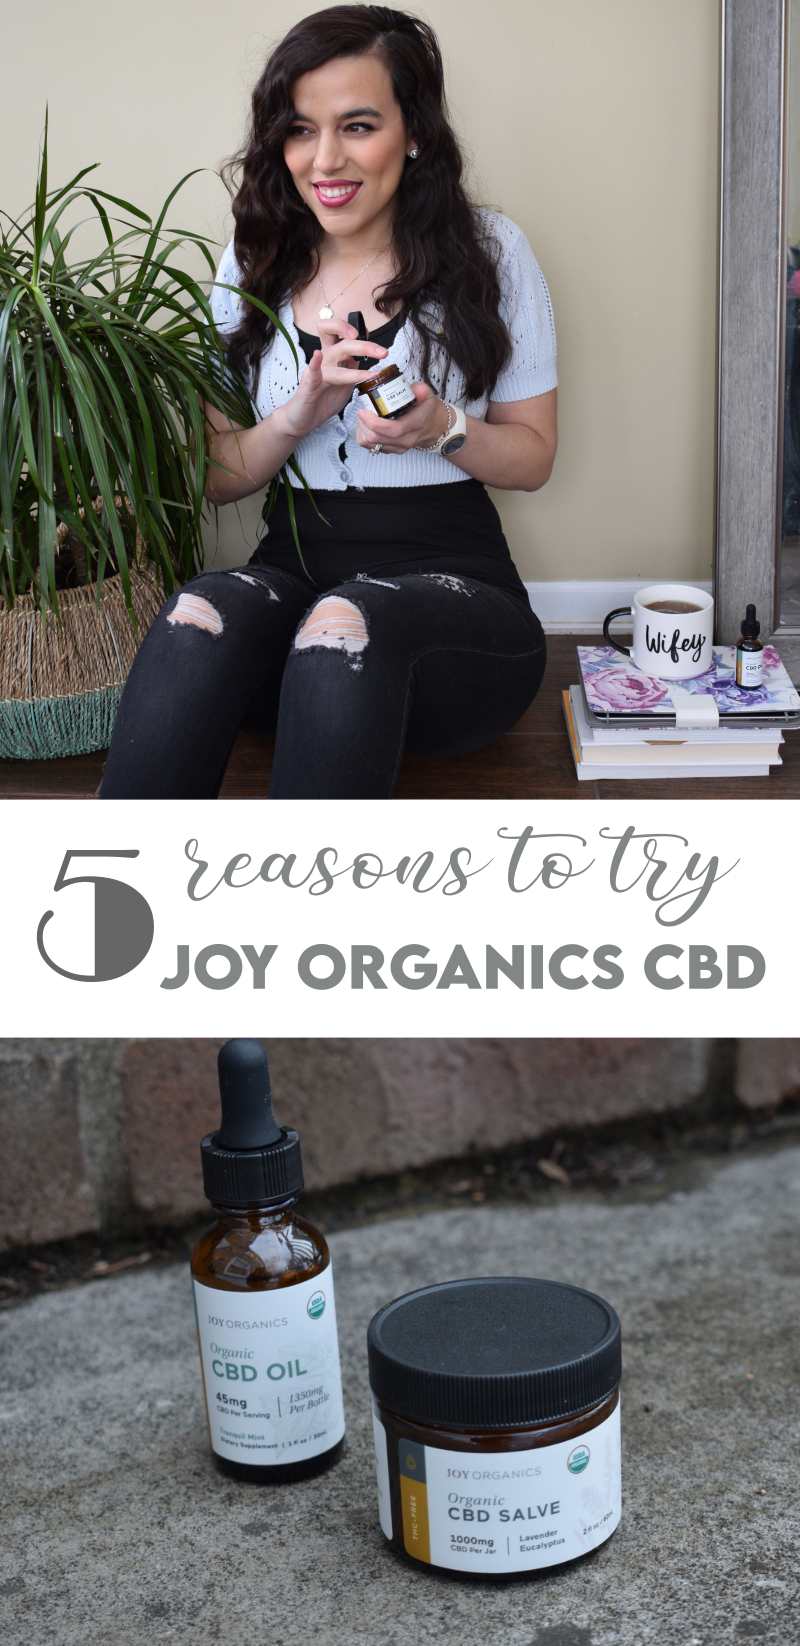 5 Reasons to Try Joy Organics CBD